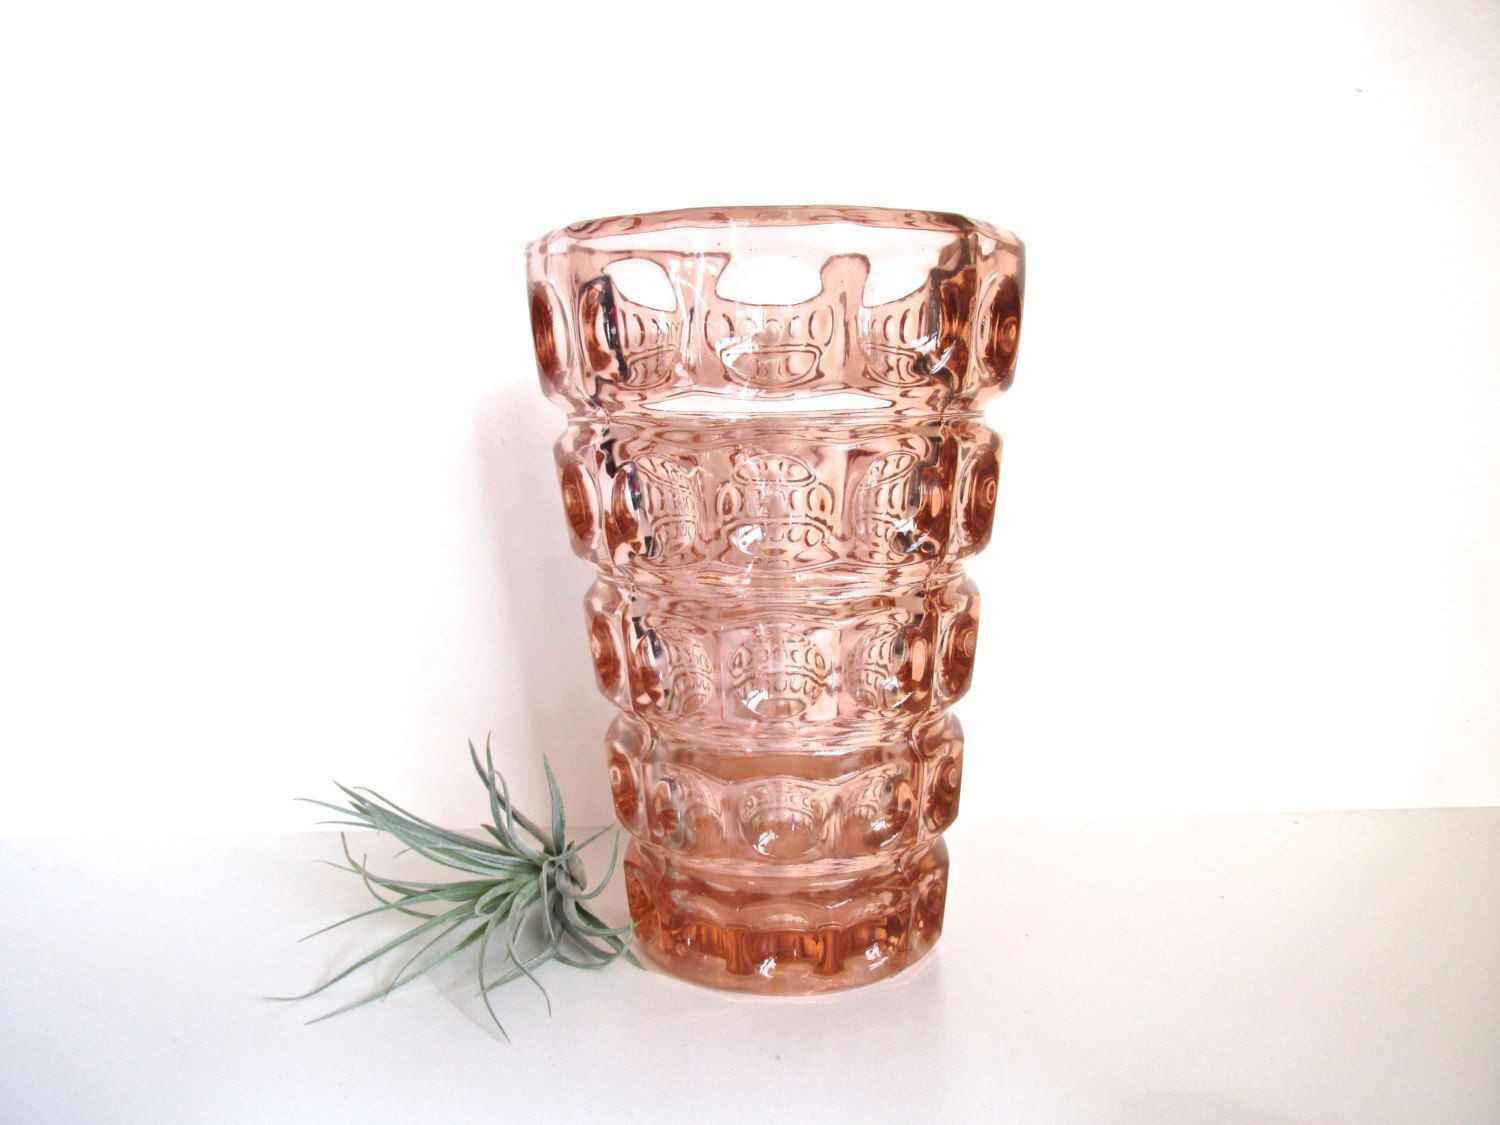 Large Ginger Vase Of 17 New Large Pink Vase Bogekompresorturkiye Com Regarding Large Pink Vase Newest Reserve Listing for J Sklo Union Pink Glass Vase Czech